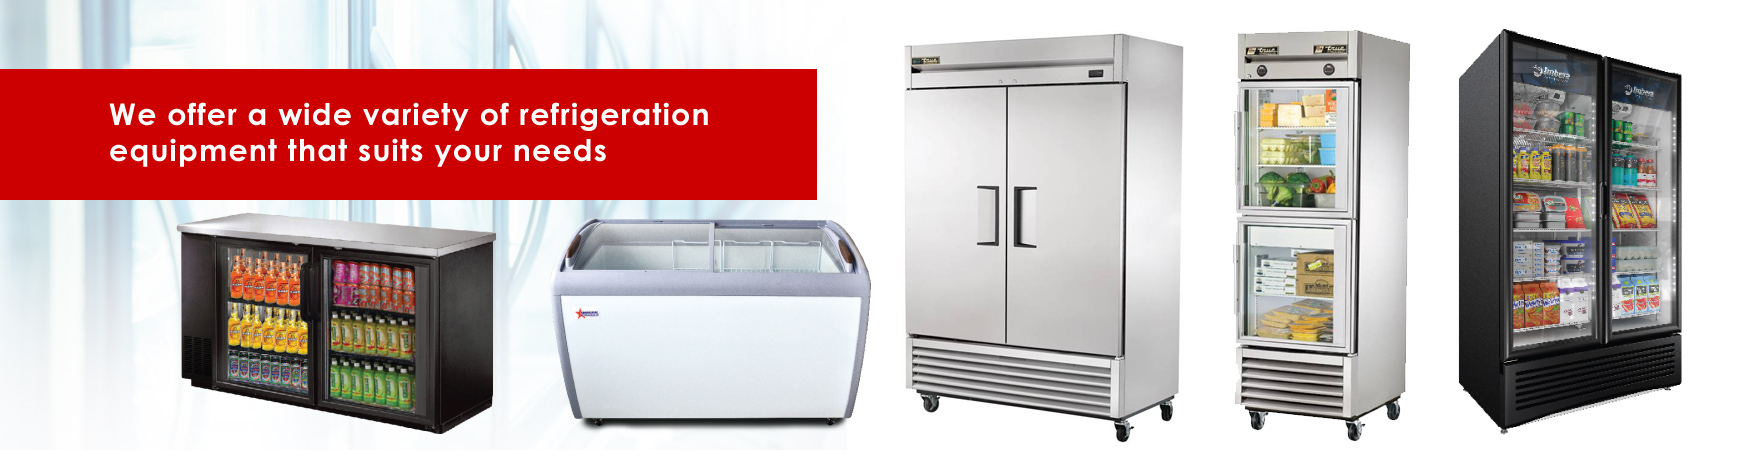 Restaurant Refrigeration Equipment